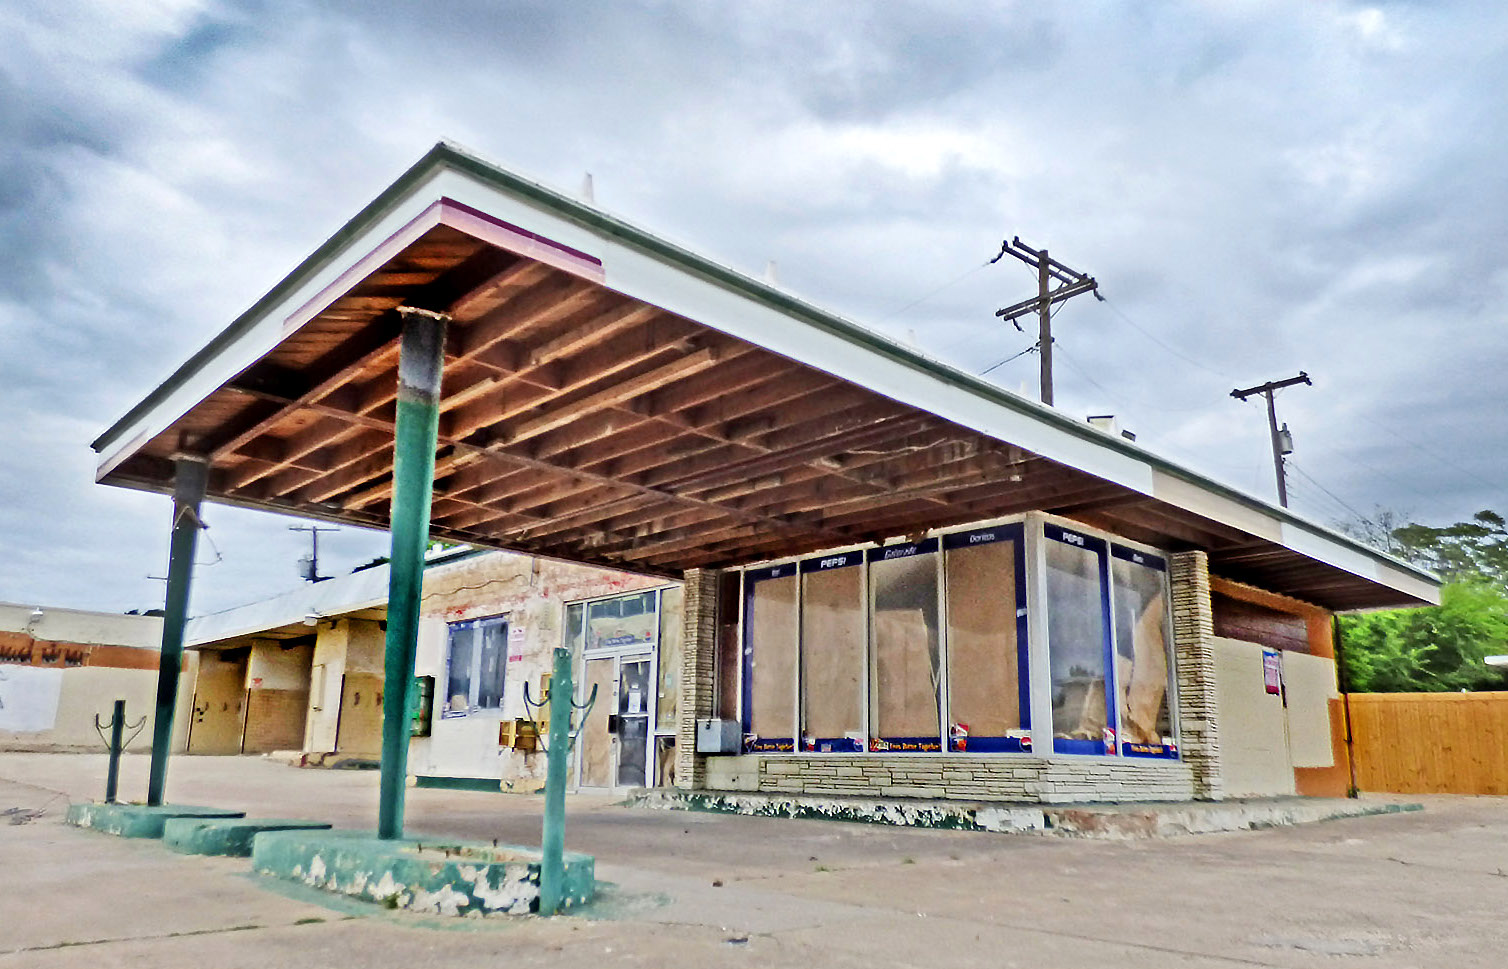 Rezoning may help activate vacant spaces like this former gas station at 2003 S. Edgefield.